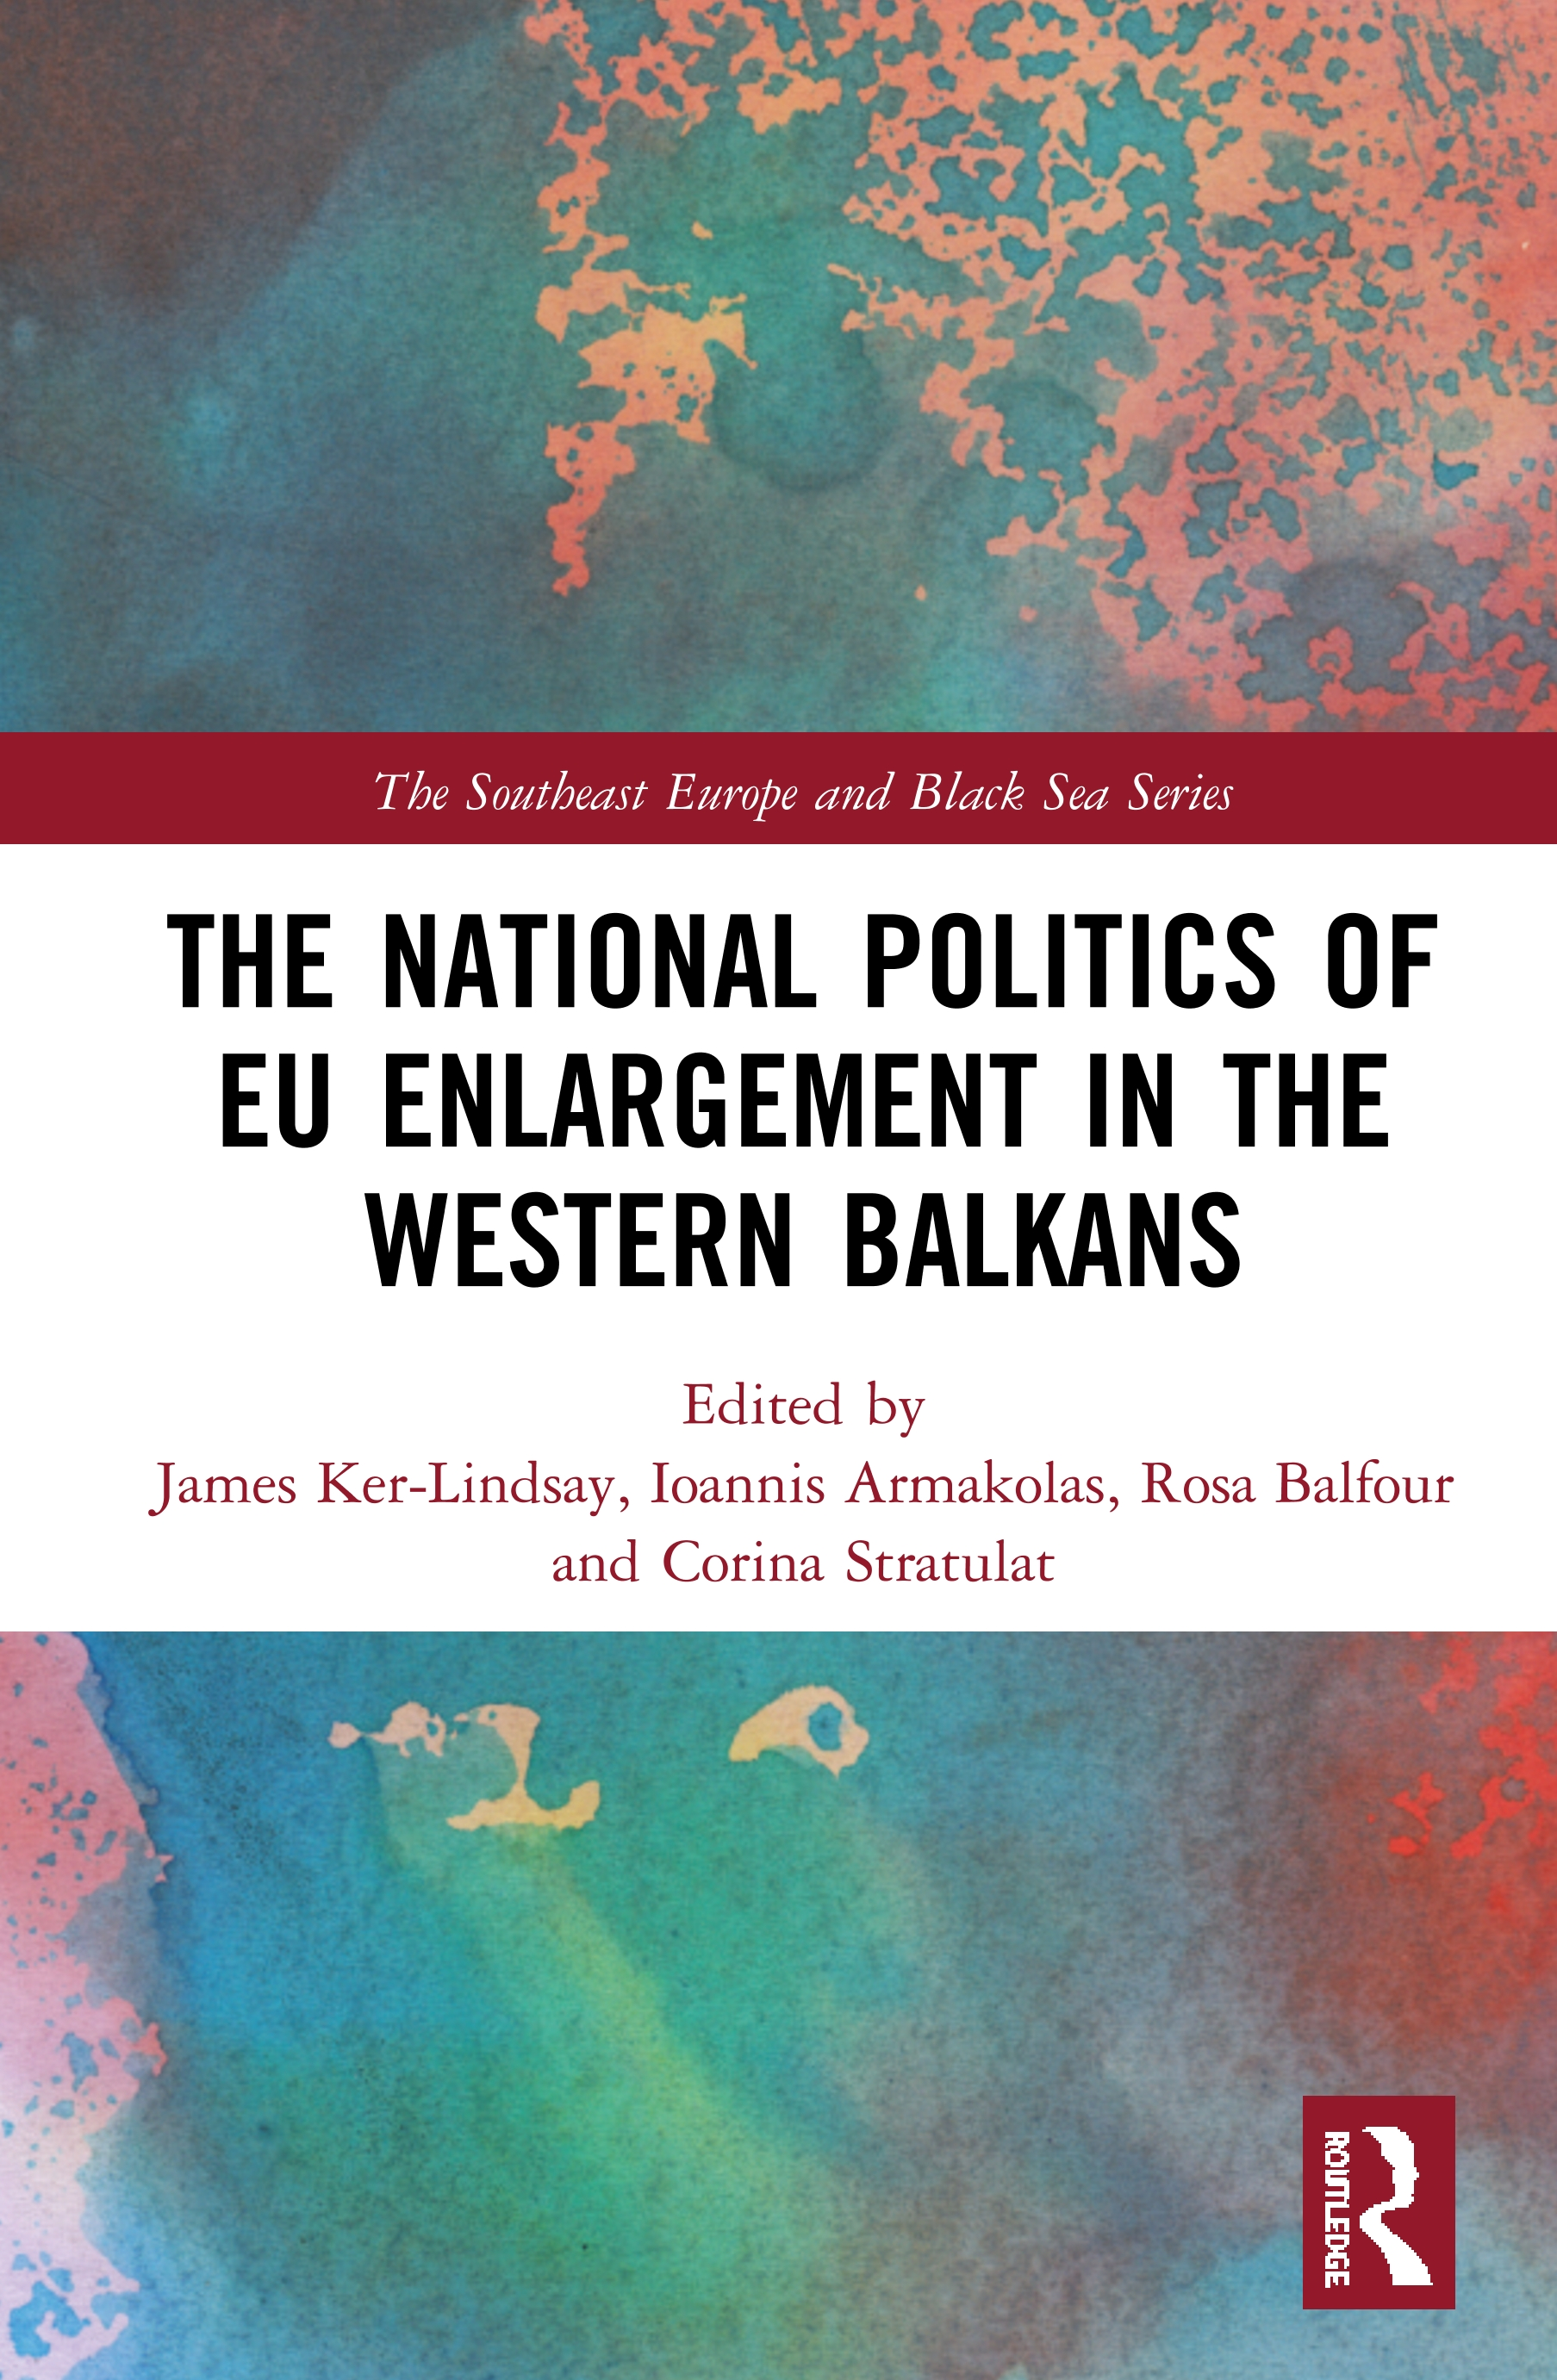 The National Politics of EU Enlargement in the Western Balkans: 1st Edition (Hardback) book cover